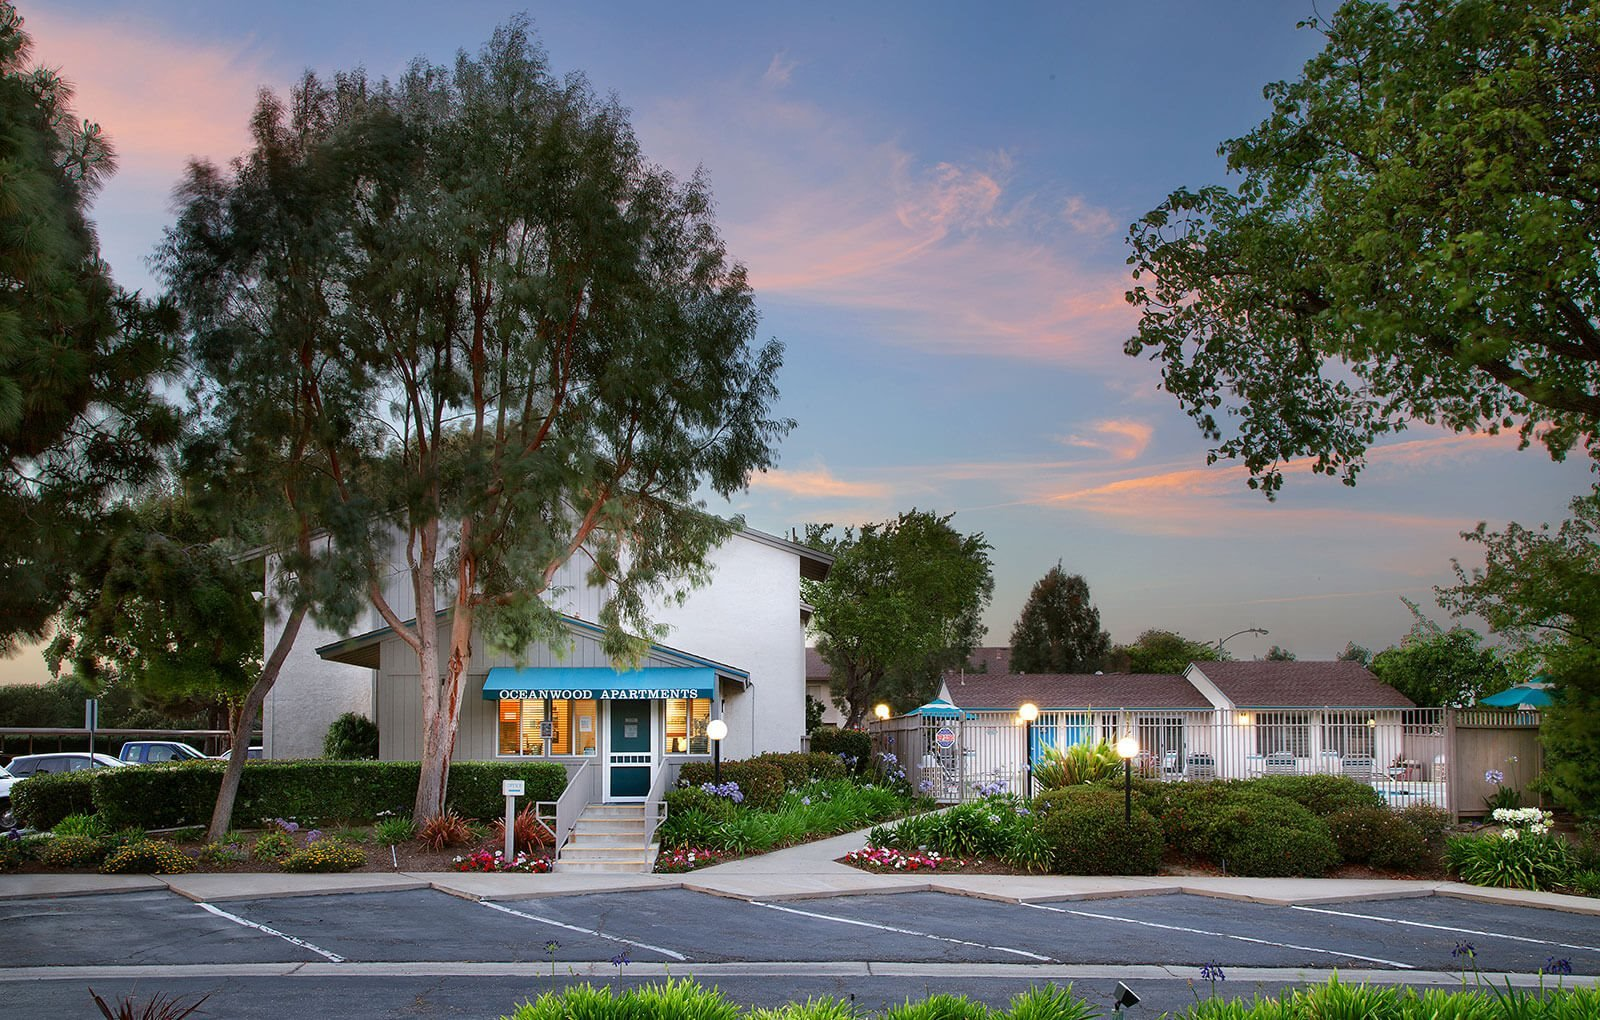 Non-smoking Community, at  Oceanwood Apartments, Lompoc, 93436